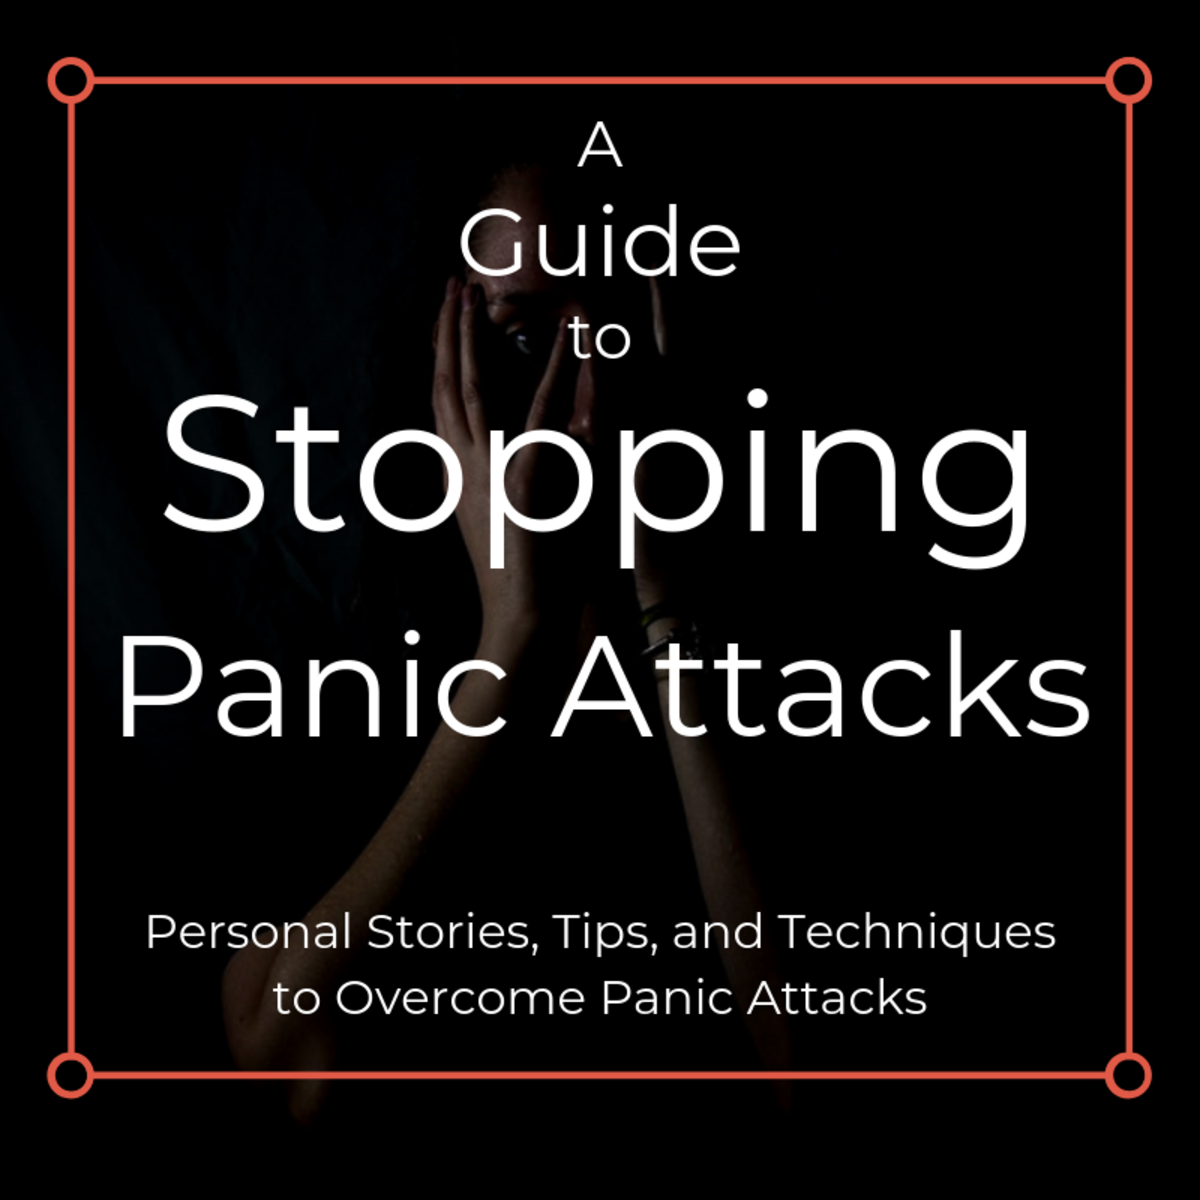 A Guide to Stopping Panic Attacks in Their Tracks